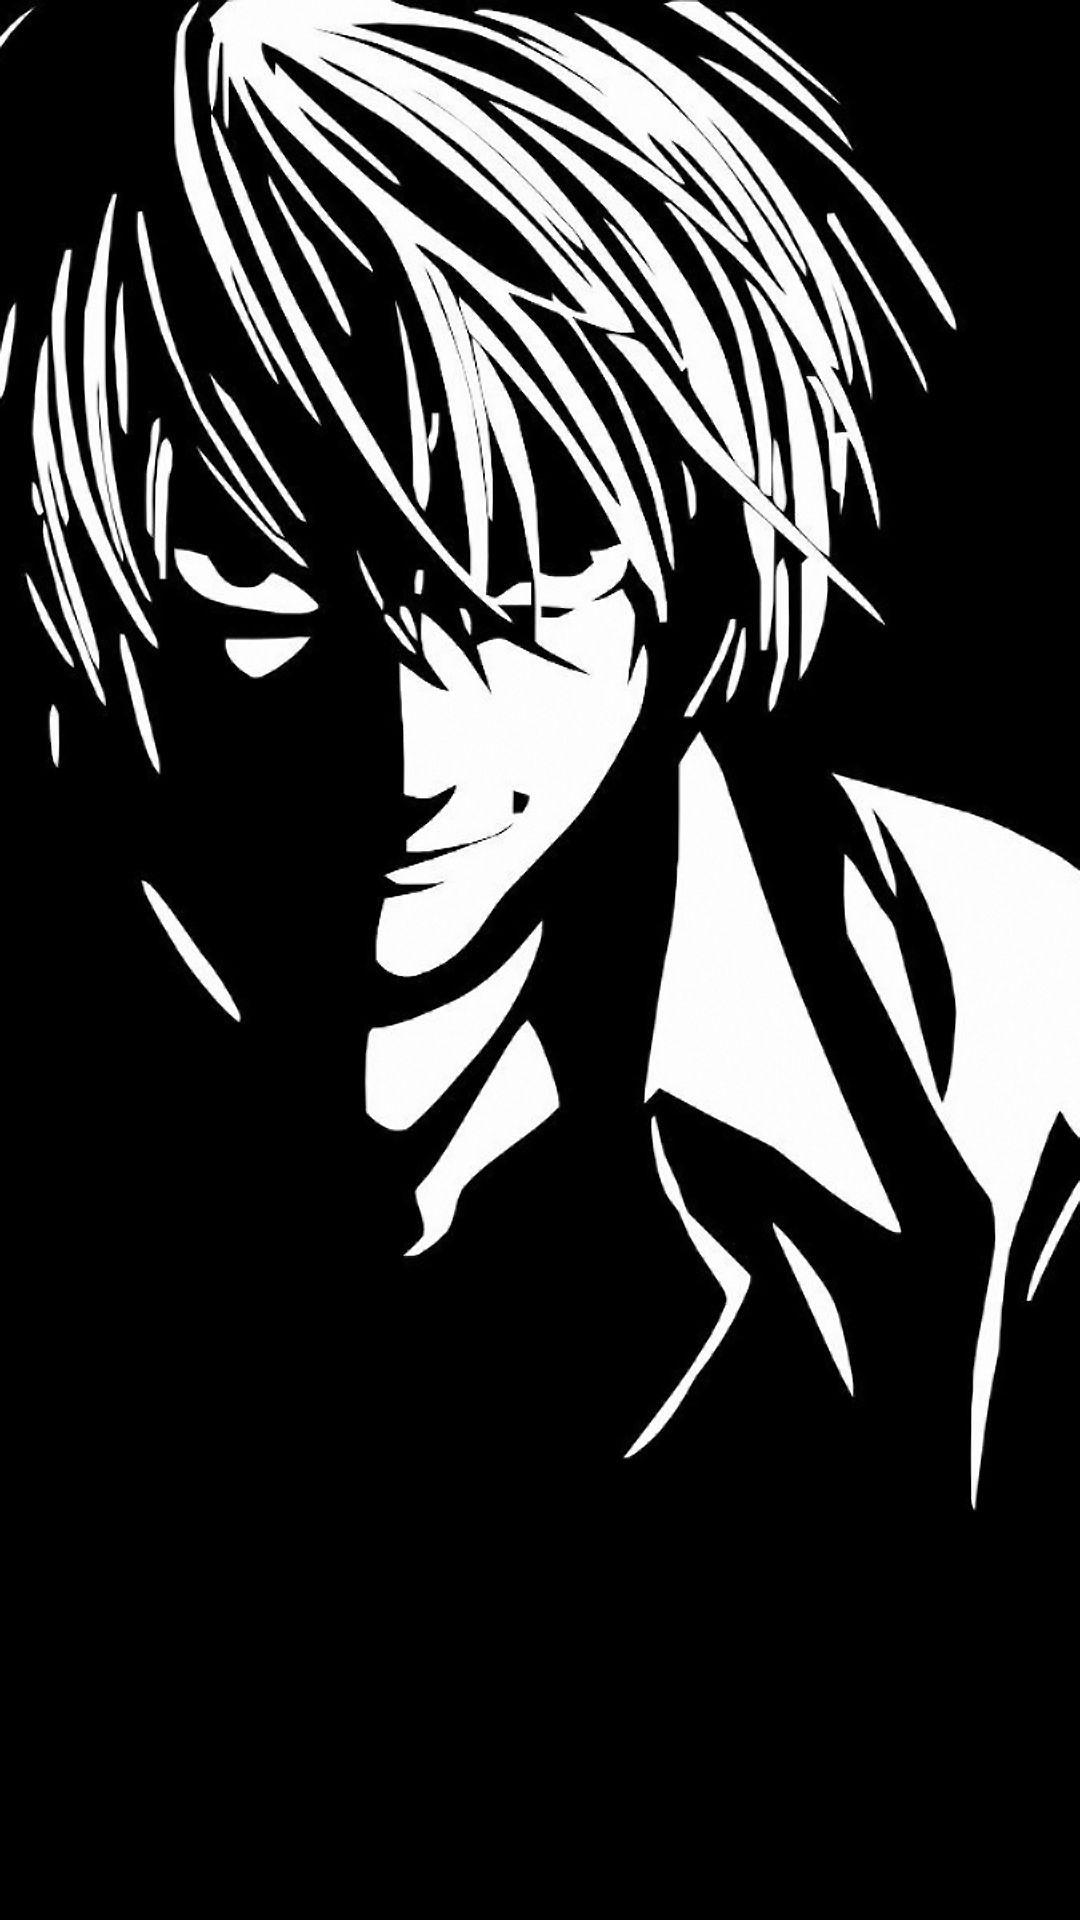 Death Note Ryuk Wallpapers HD - Wallpaper Cave